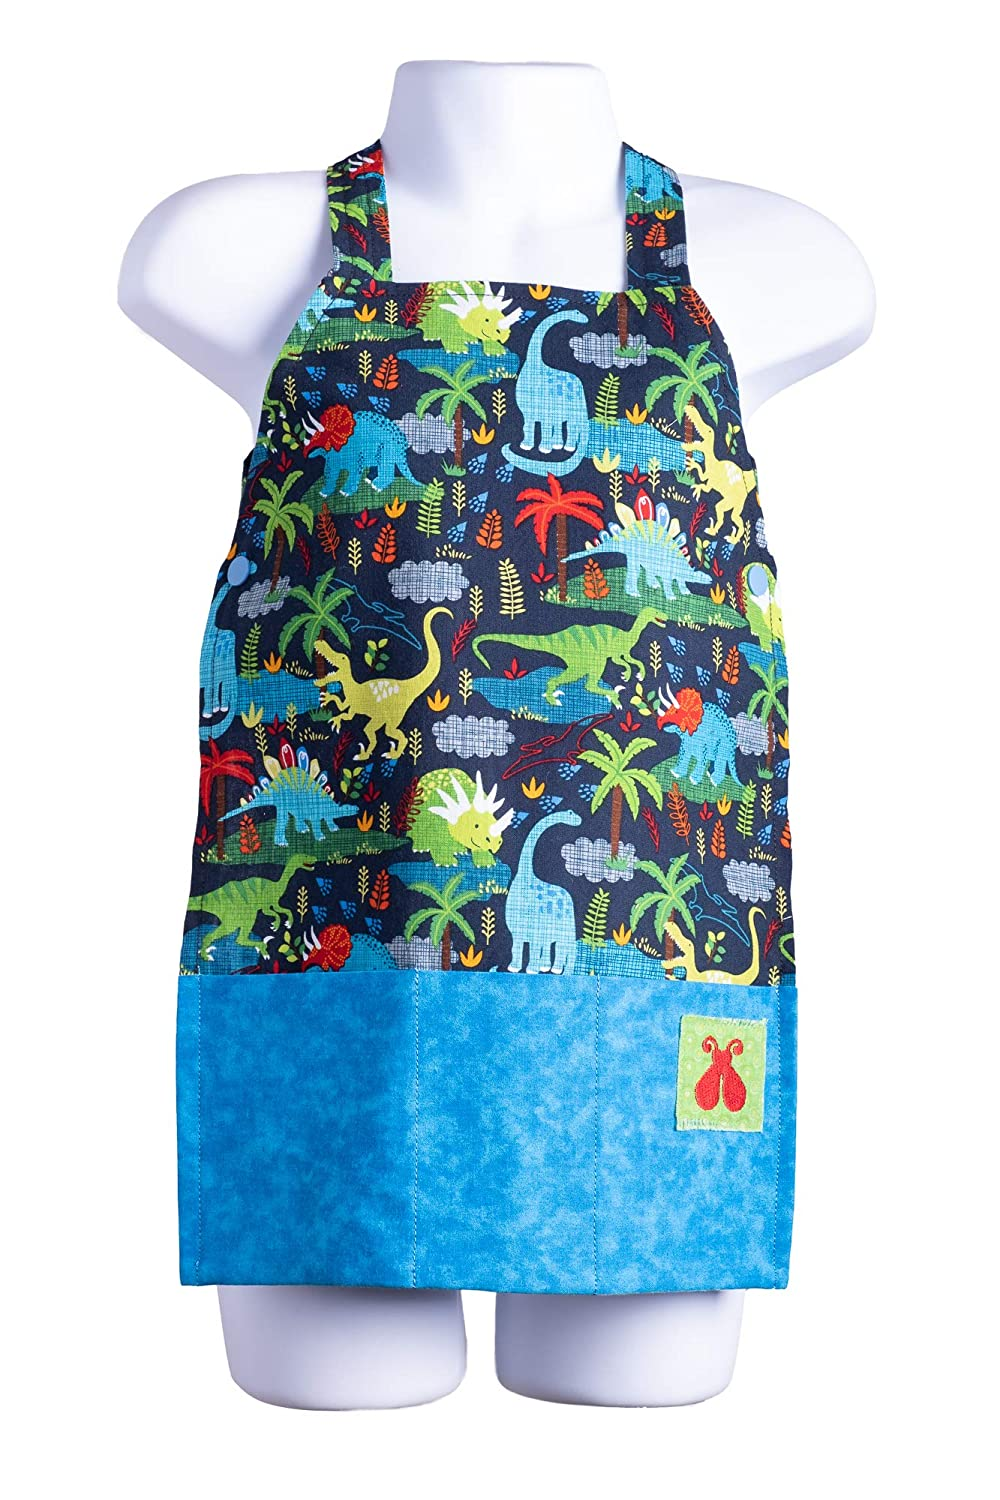 Bailey Bug Toddler Dinosaur STEM Play Apron for Girls and Boys Arts, Crafts, Digging, Experiments and Kitchen Fun (Small)